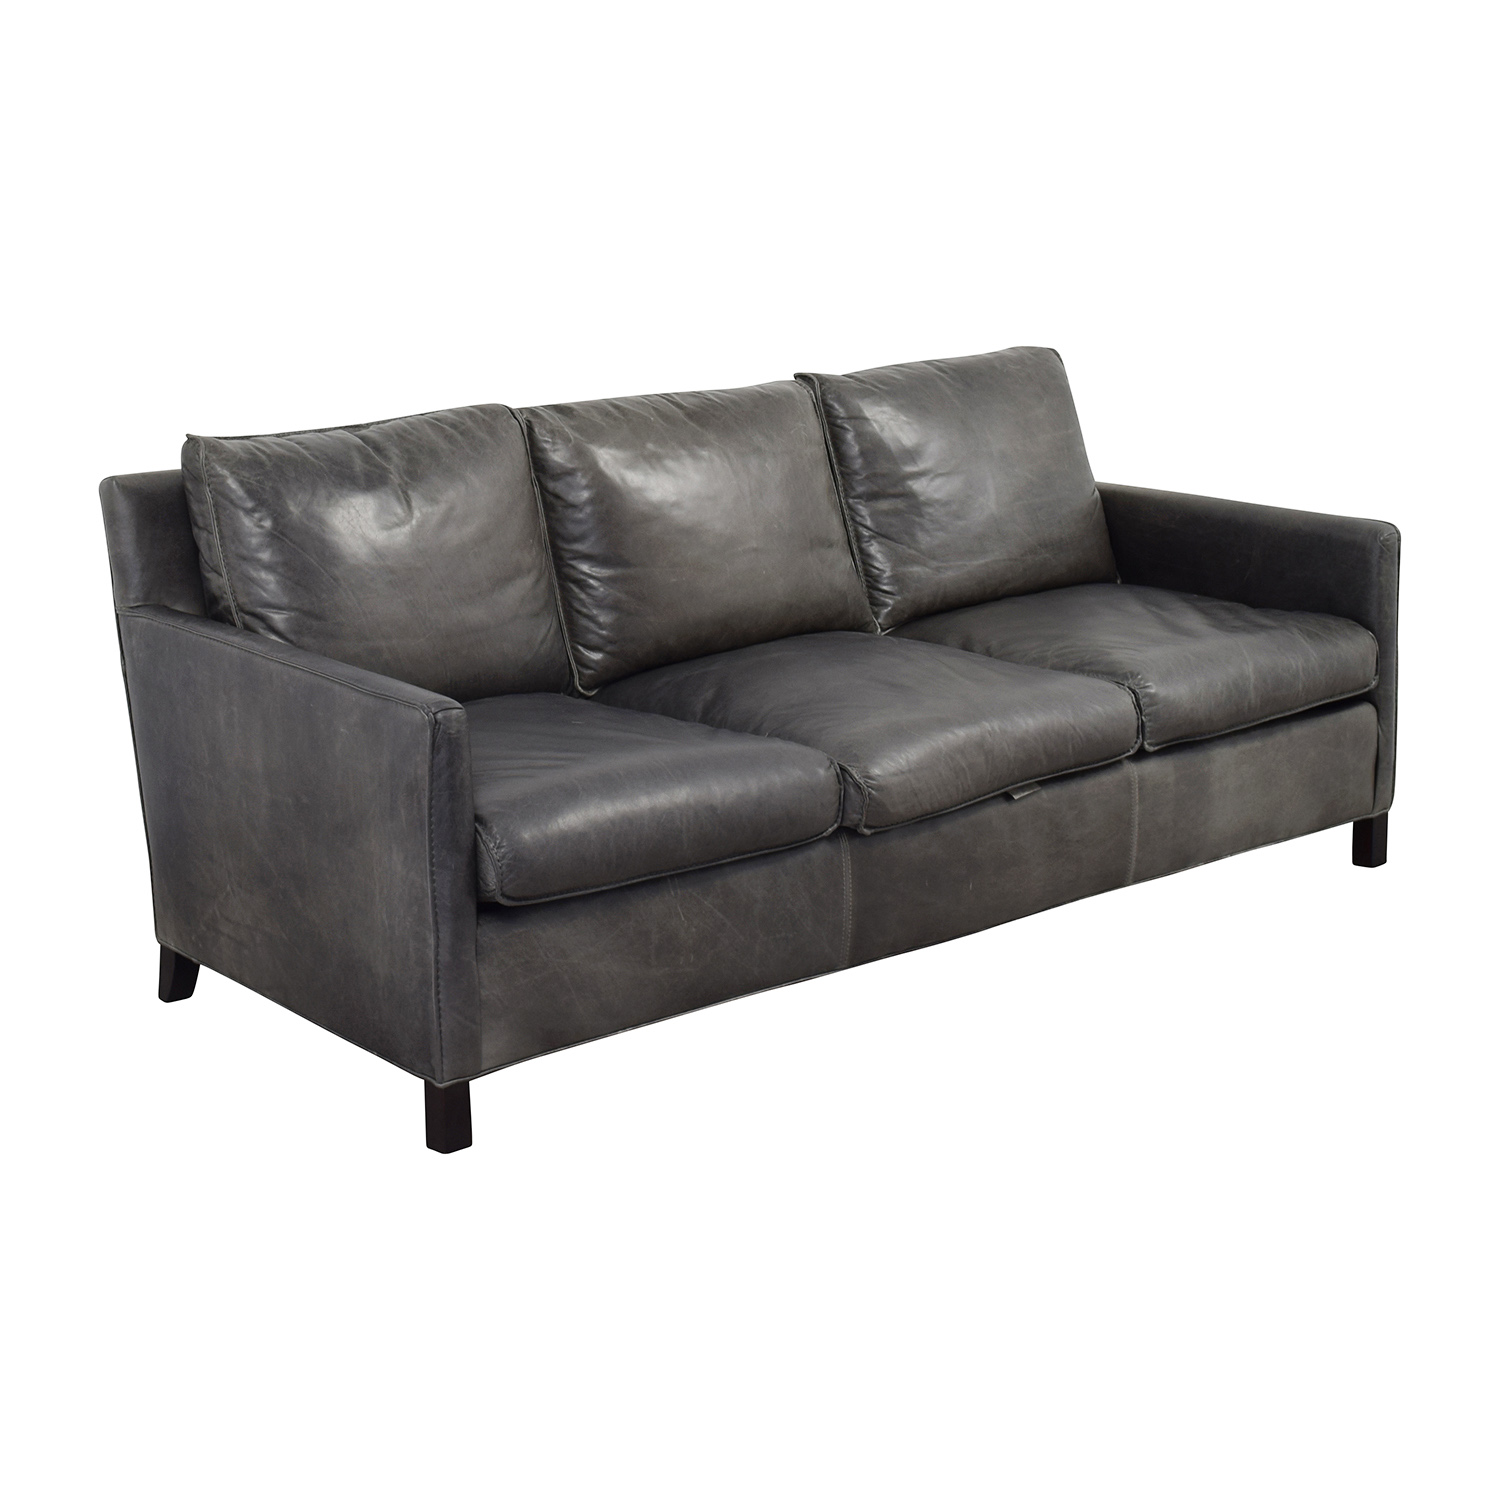 room and board sofas sectionals sloane sofa darlings of chelsea 62 off bram leather